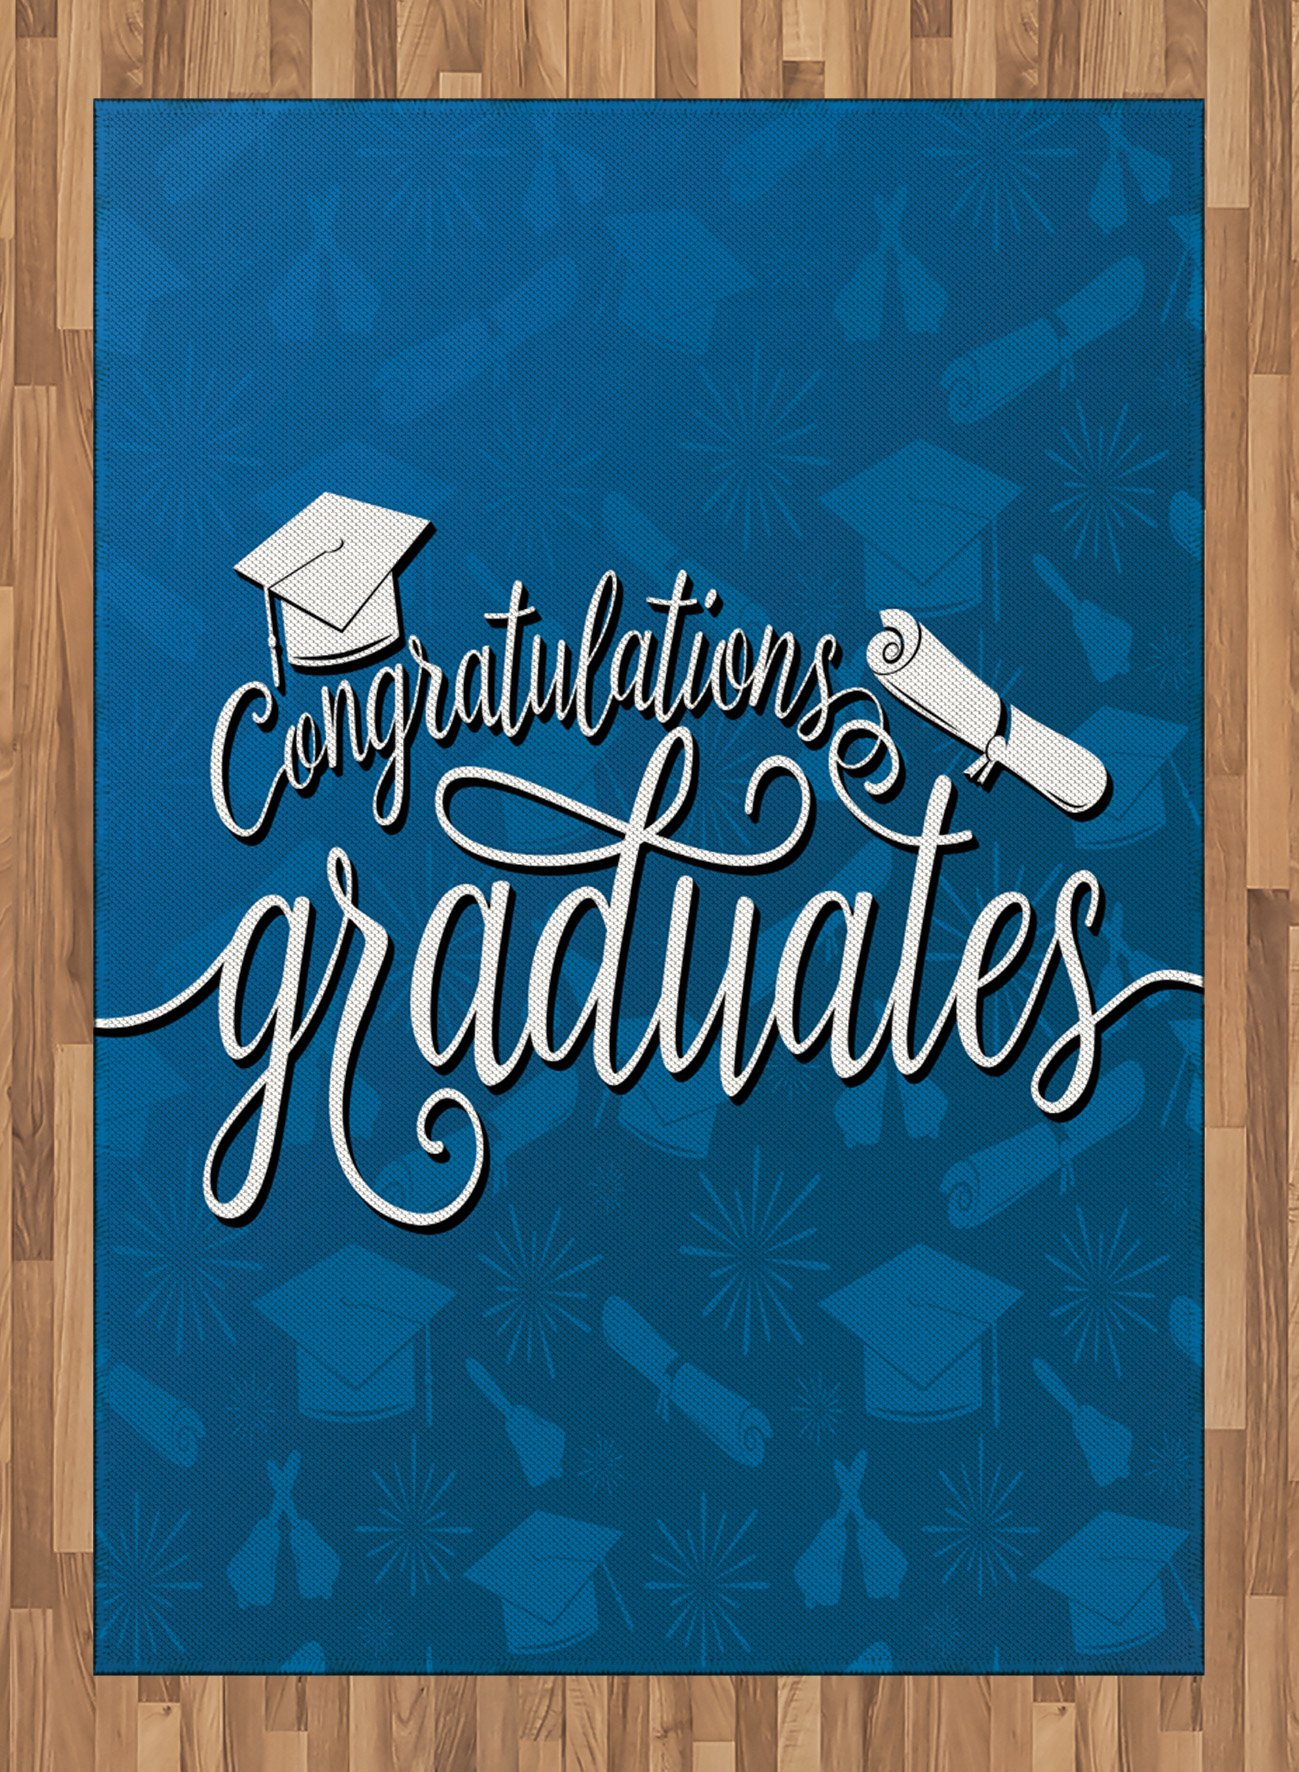 Graduation Area Rug by Lunarable, College Celebration Ceremony Certificate Diploma Square Academic Cap Print, Flat Woven Accent Rug for Living Room Bedroom Dining Room, 5.2 x 7.5 FT, Blue and White